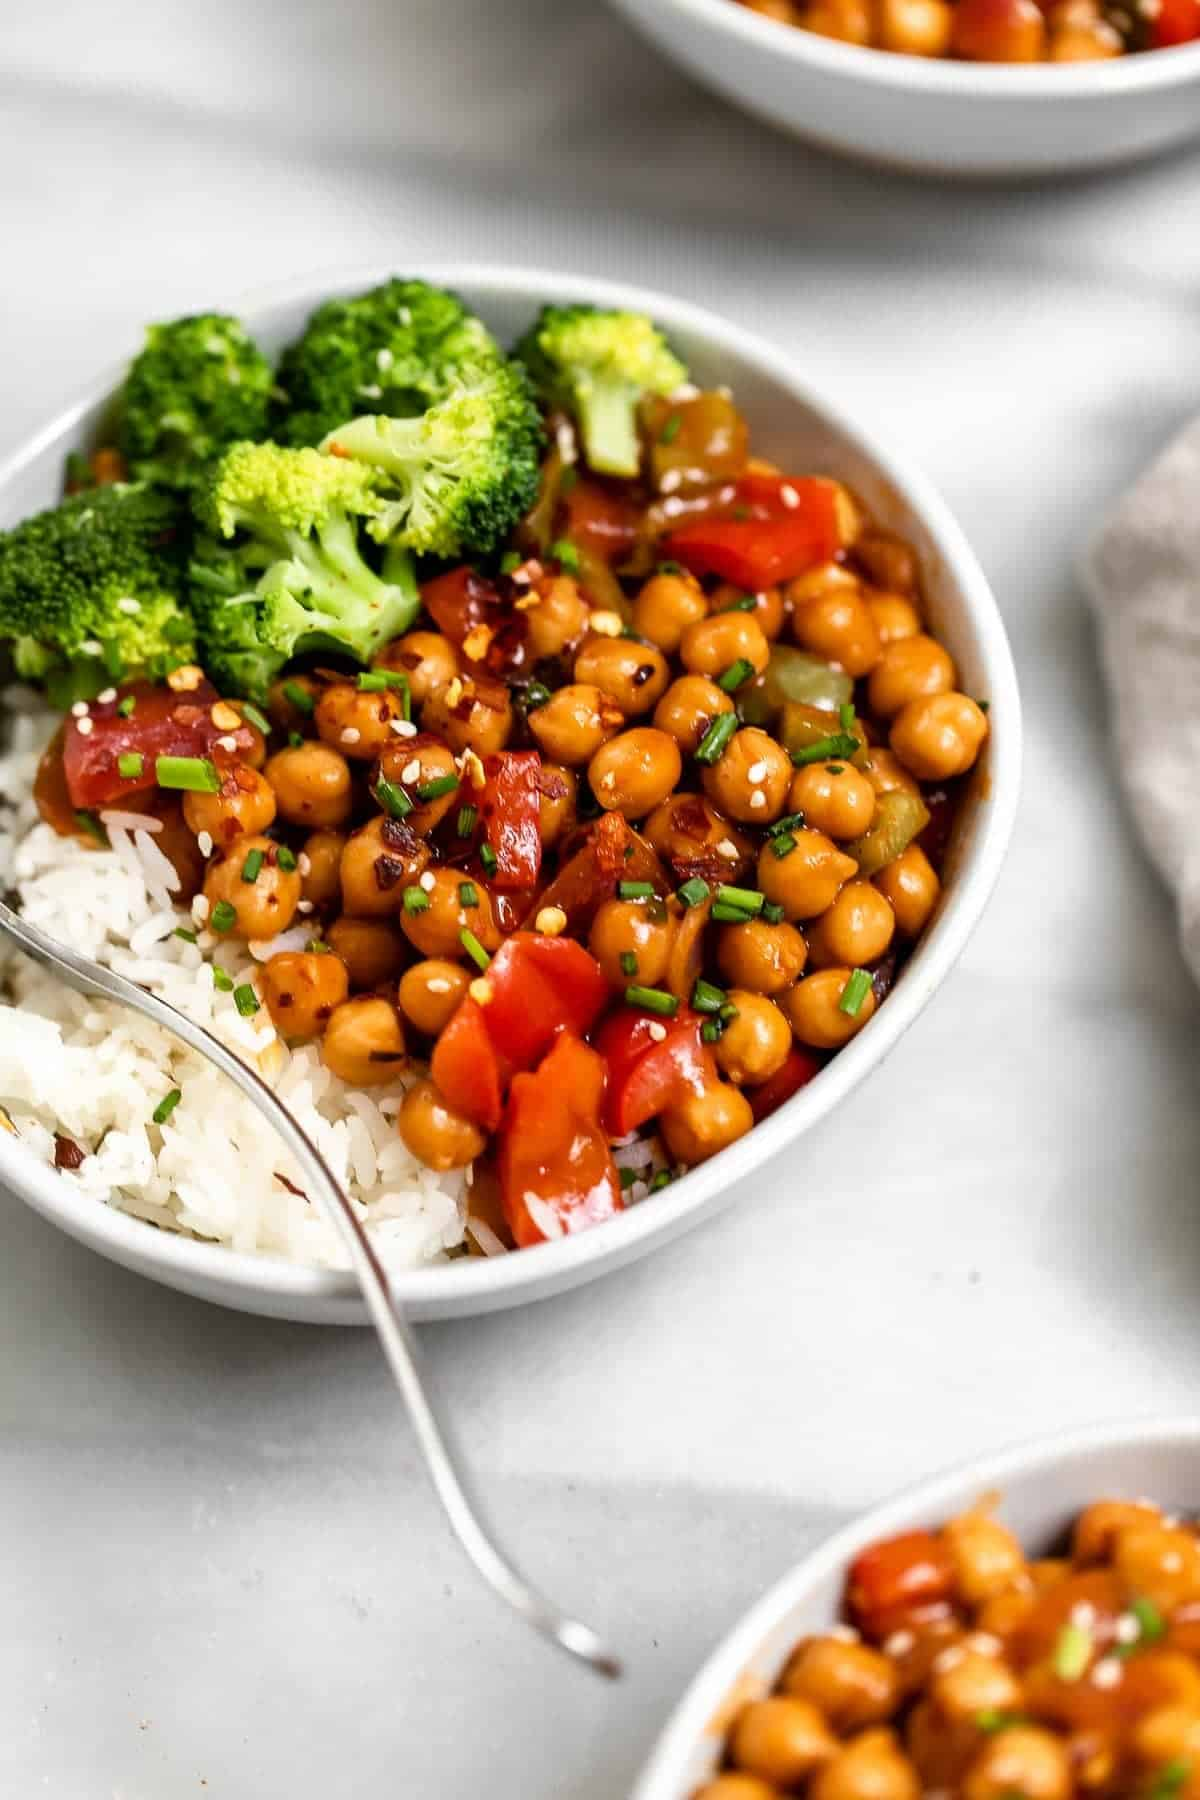 Vegan chickpea stir fry with steamed broccoli on the side.